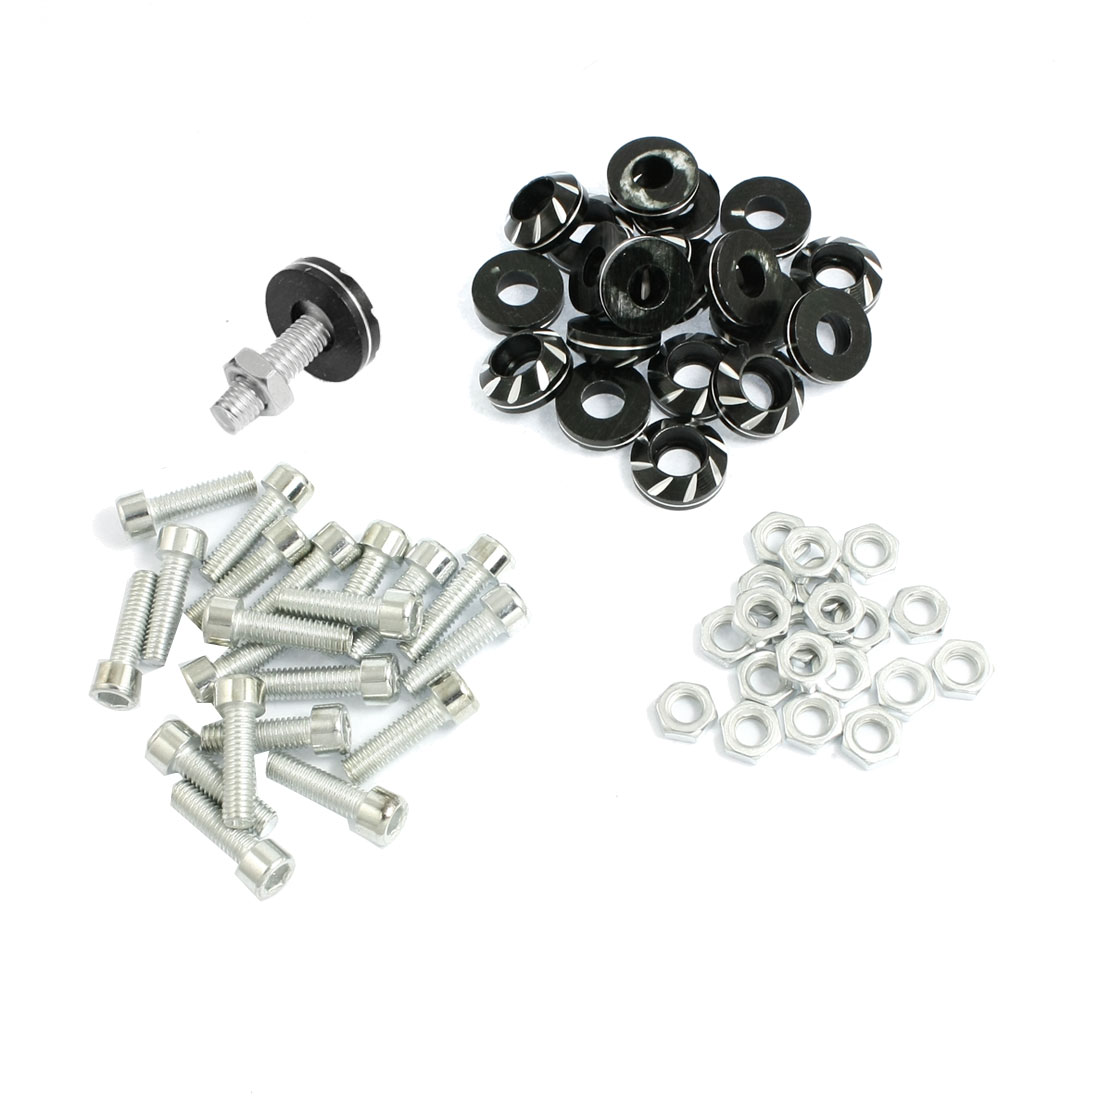 20 Pcs Silver Tone Black License Plate Bolt Screw for Car